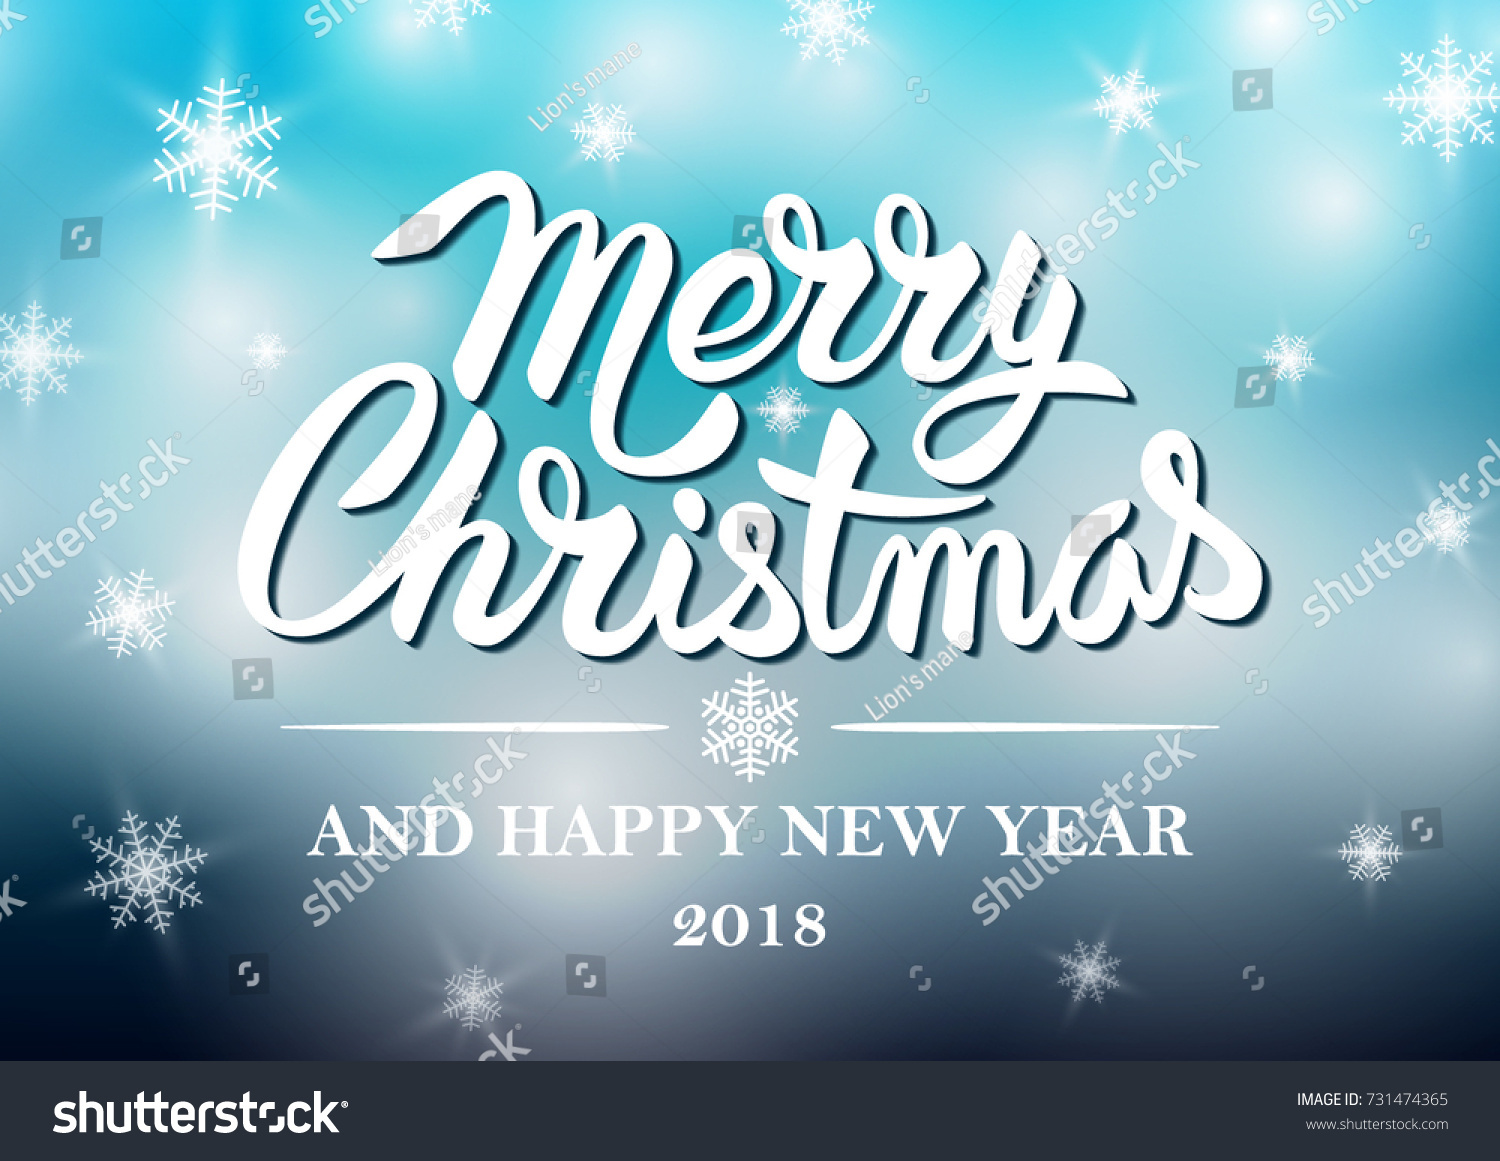 christmas and happy new year 2018 typographical on shiny xmas background with snowflakes light and